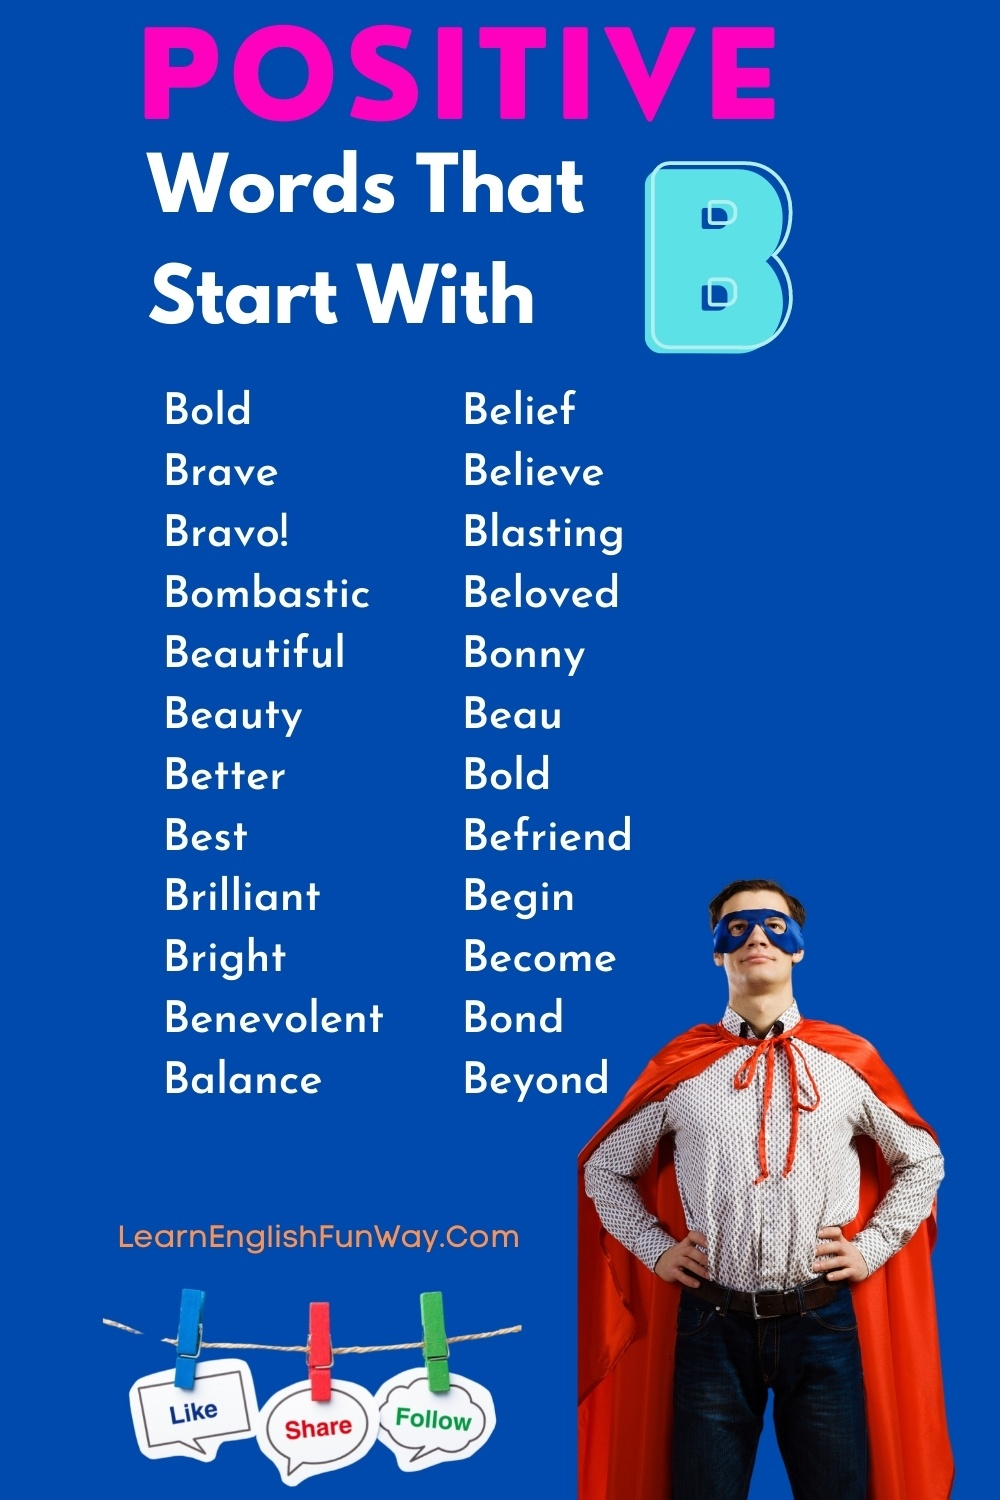 list of positive words that start with B - Positive Words That Start With B